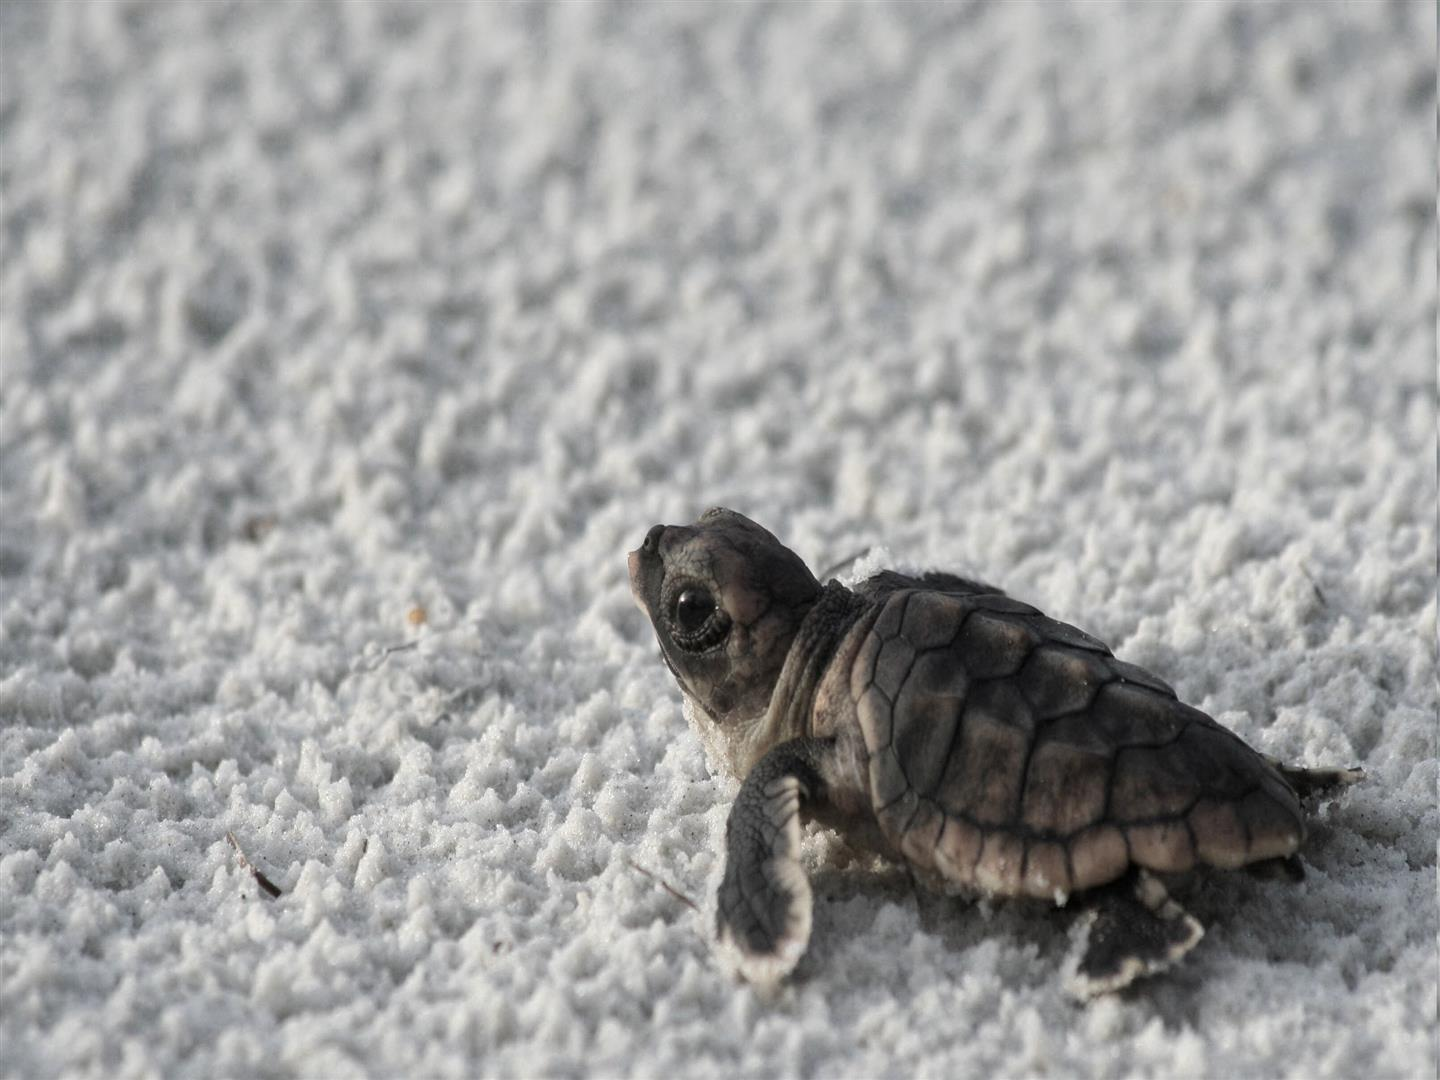 1440x1080 Baby Turtle on Beach